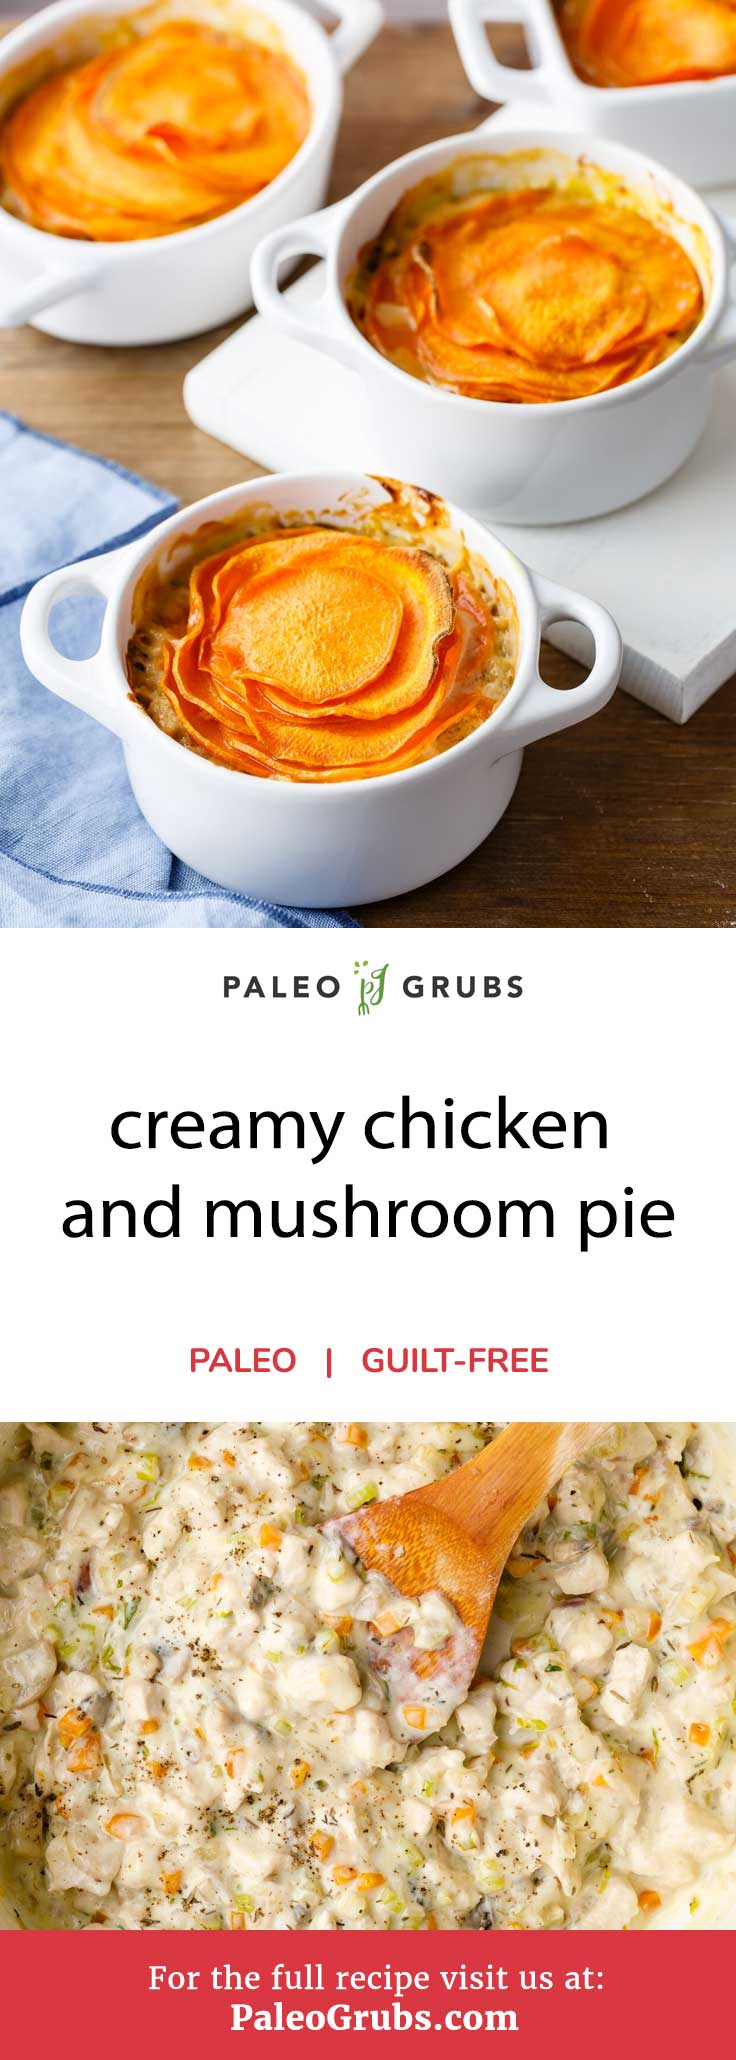 This creamy chicken and mushroom pie recipe has everything that you could want in a delicious paleo-friendly meal: a fantastic homemade crust made with sweet potatoes, plenty of protein from the chicken, a great mixture of vegetables, and an awesome creamy mushroom sauce that rounds the whole thing out.This meat and veggie pie uses sweet potato for a pie crust while being absolutely loaded with healthy veggies and chicken in a creamy mushroom sauce.